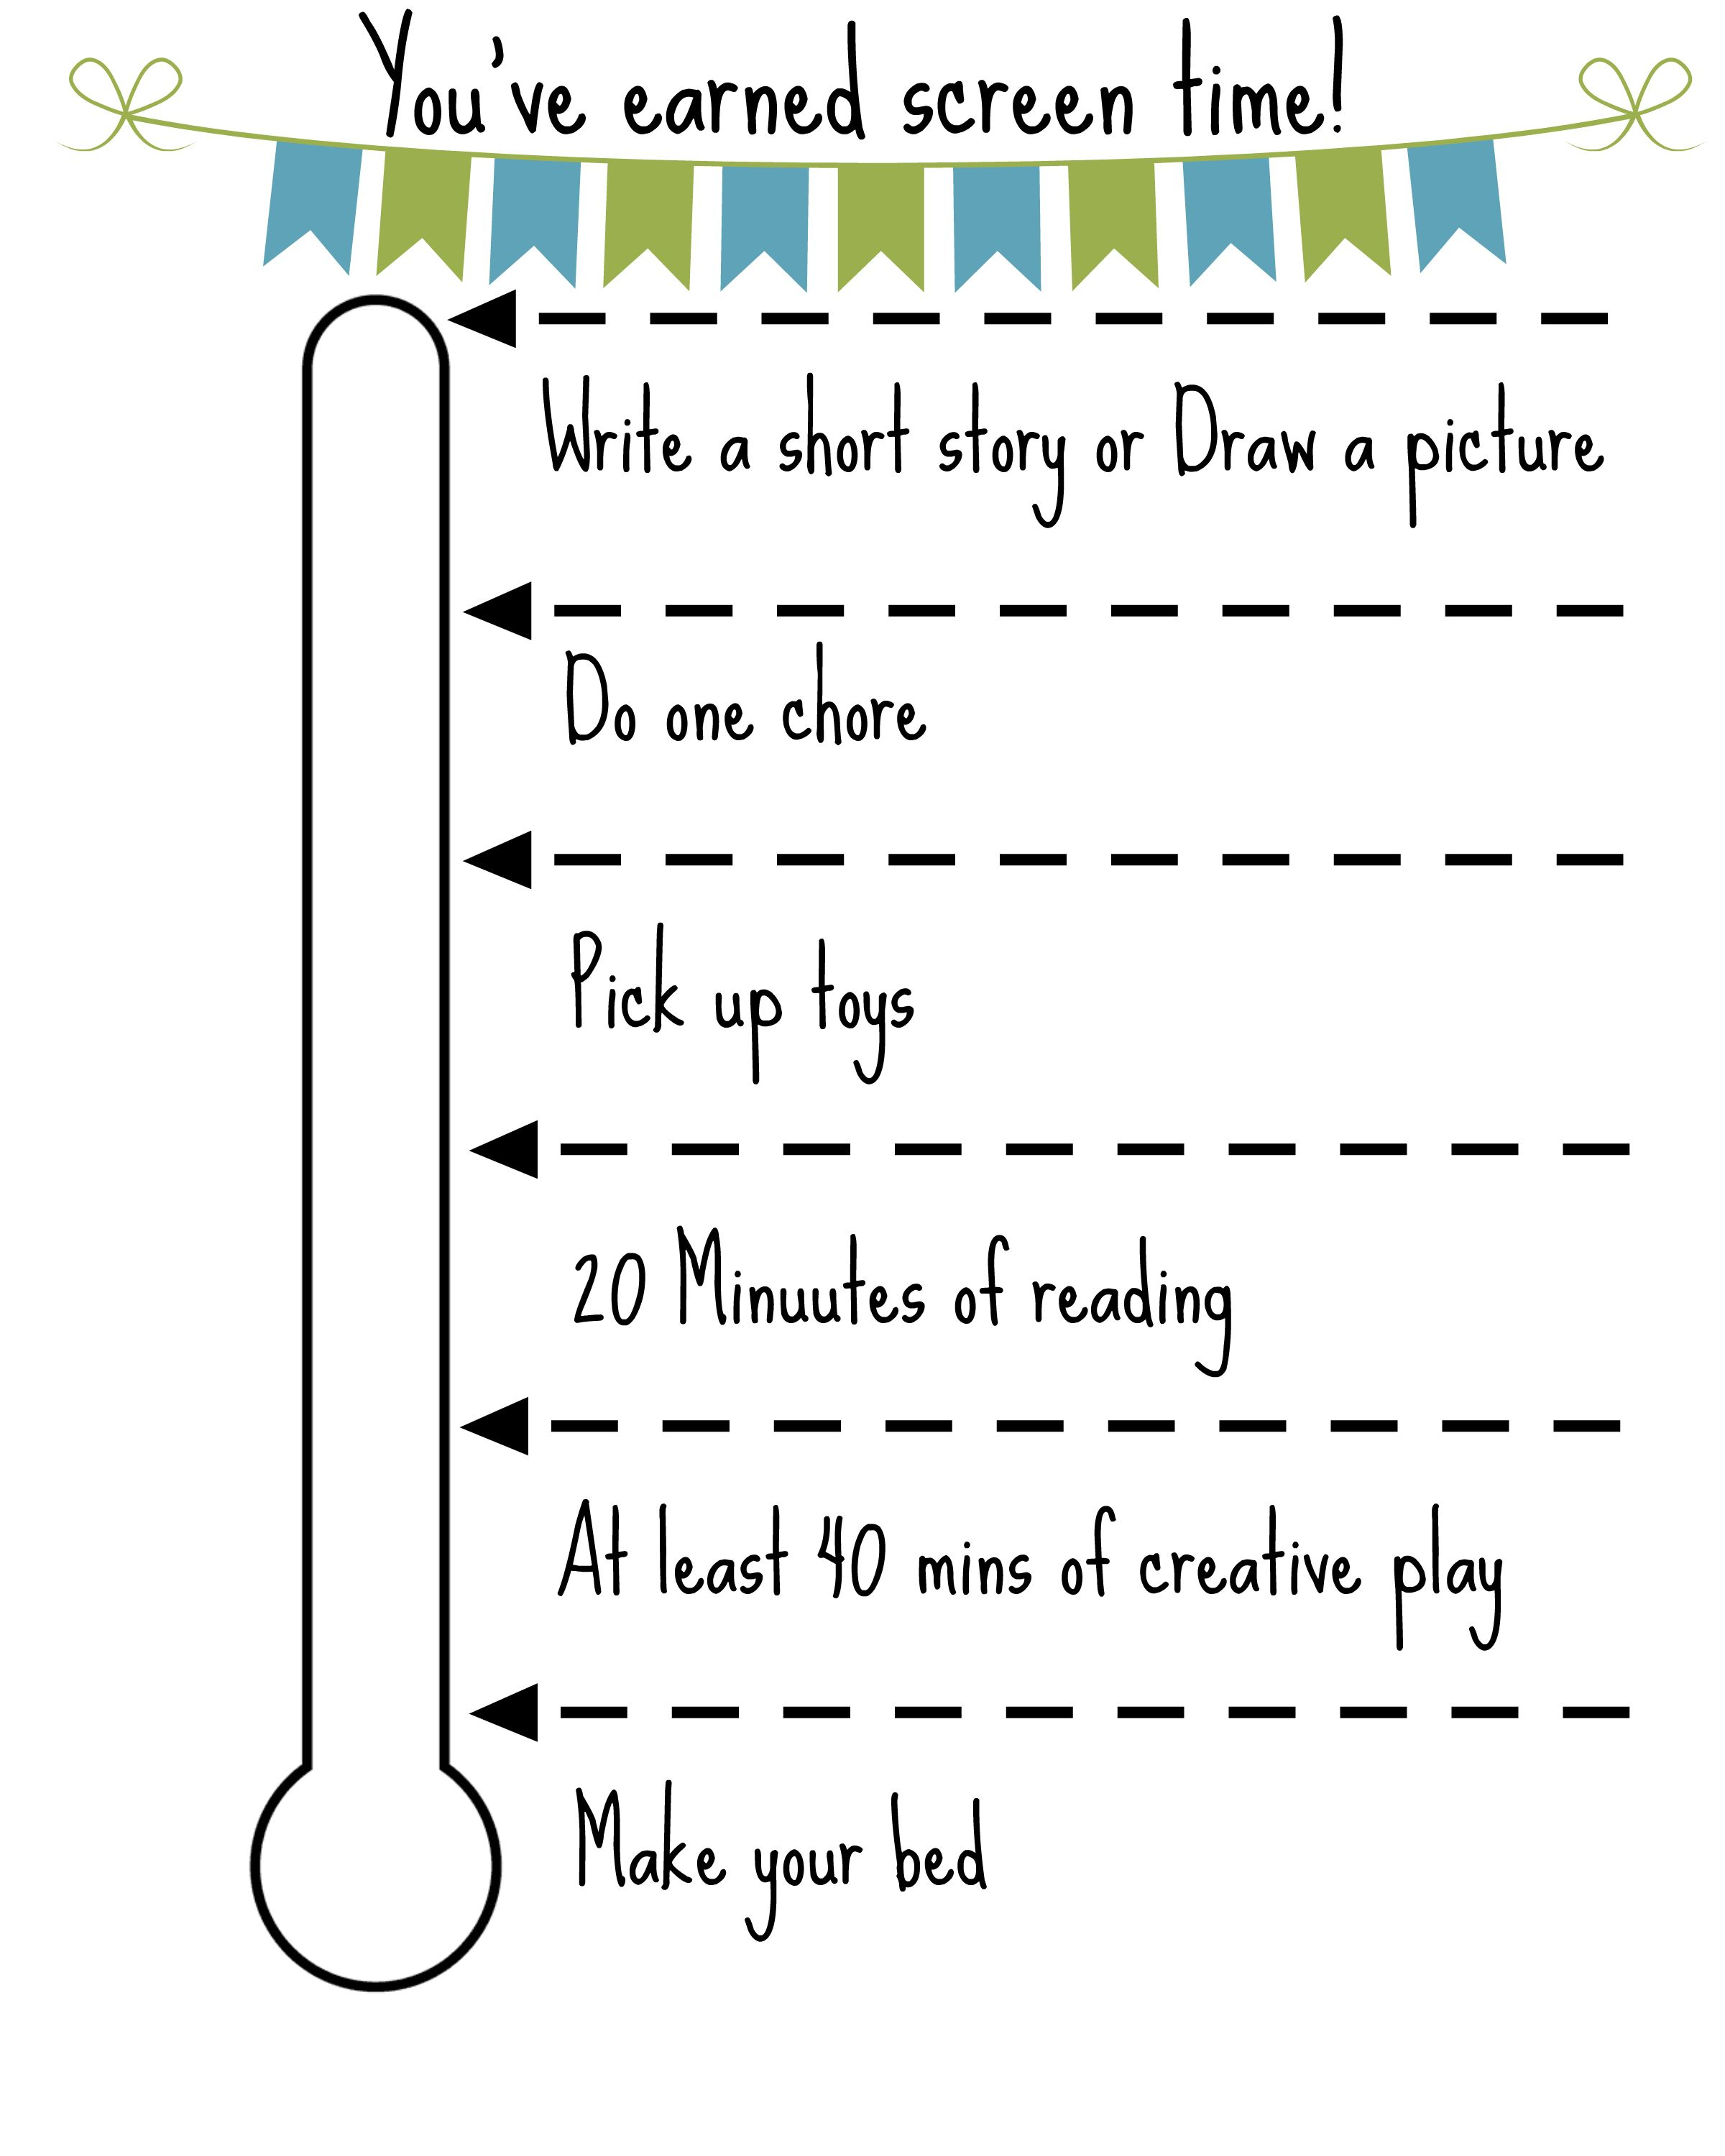 Free Printable Screen Time Chart